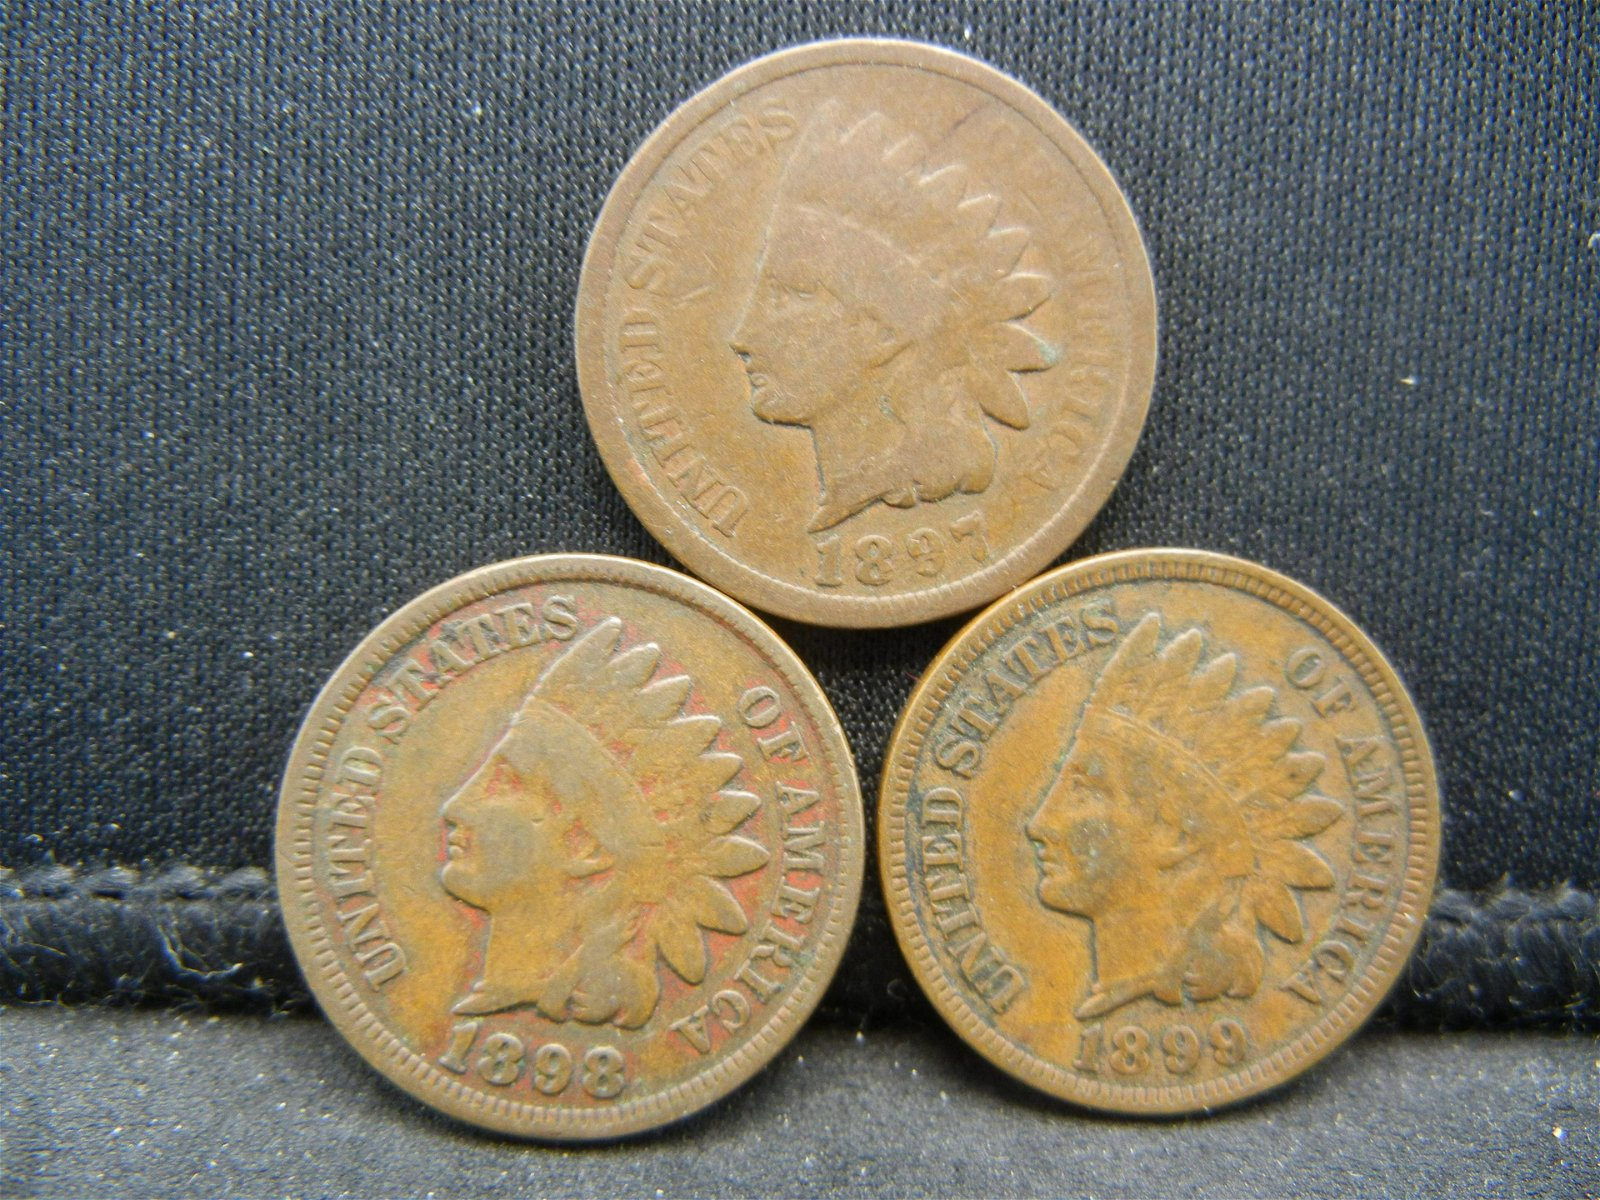 1897 1898 1899 Indian Head Cents.